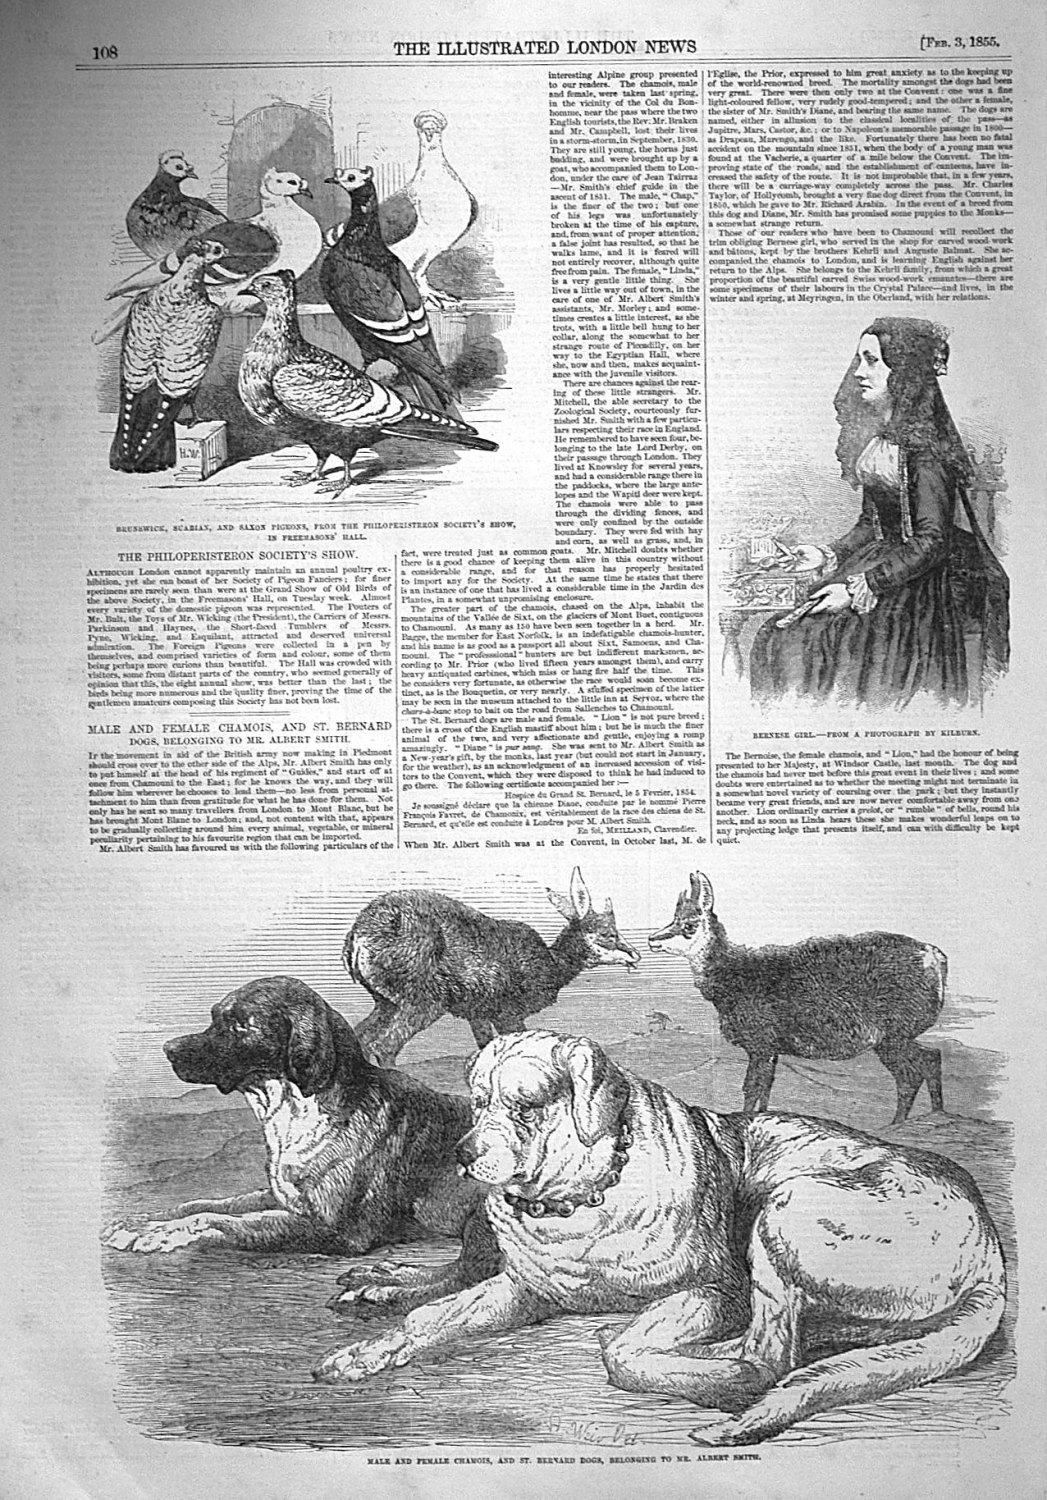 Male and Female Chamois, and St. Bernard Dogs, Belonging to Mr. Albert Smit